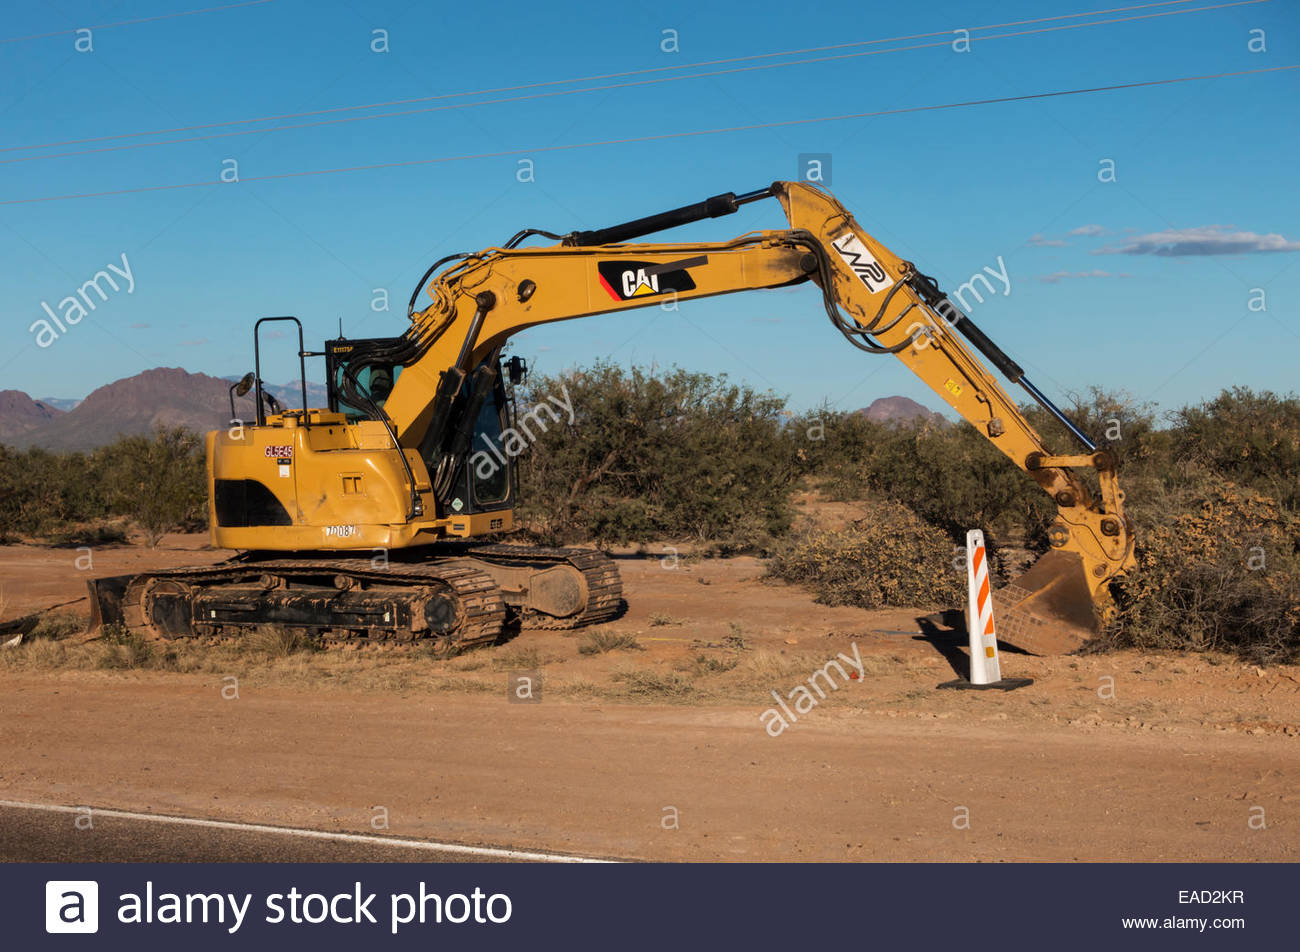 hight resolution of caterpillar cat 314d excavator arizona